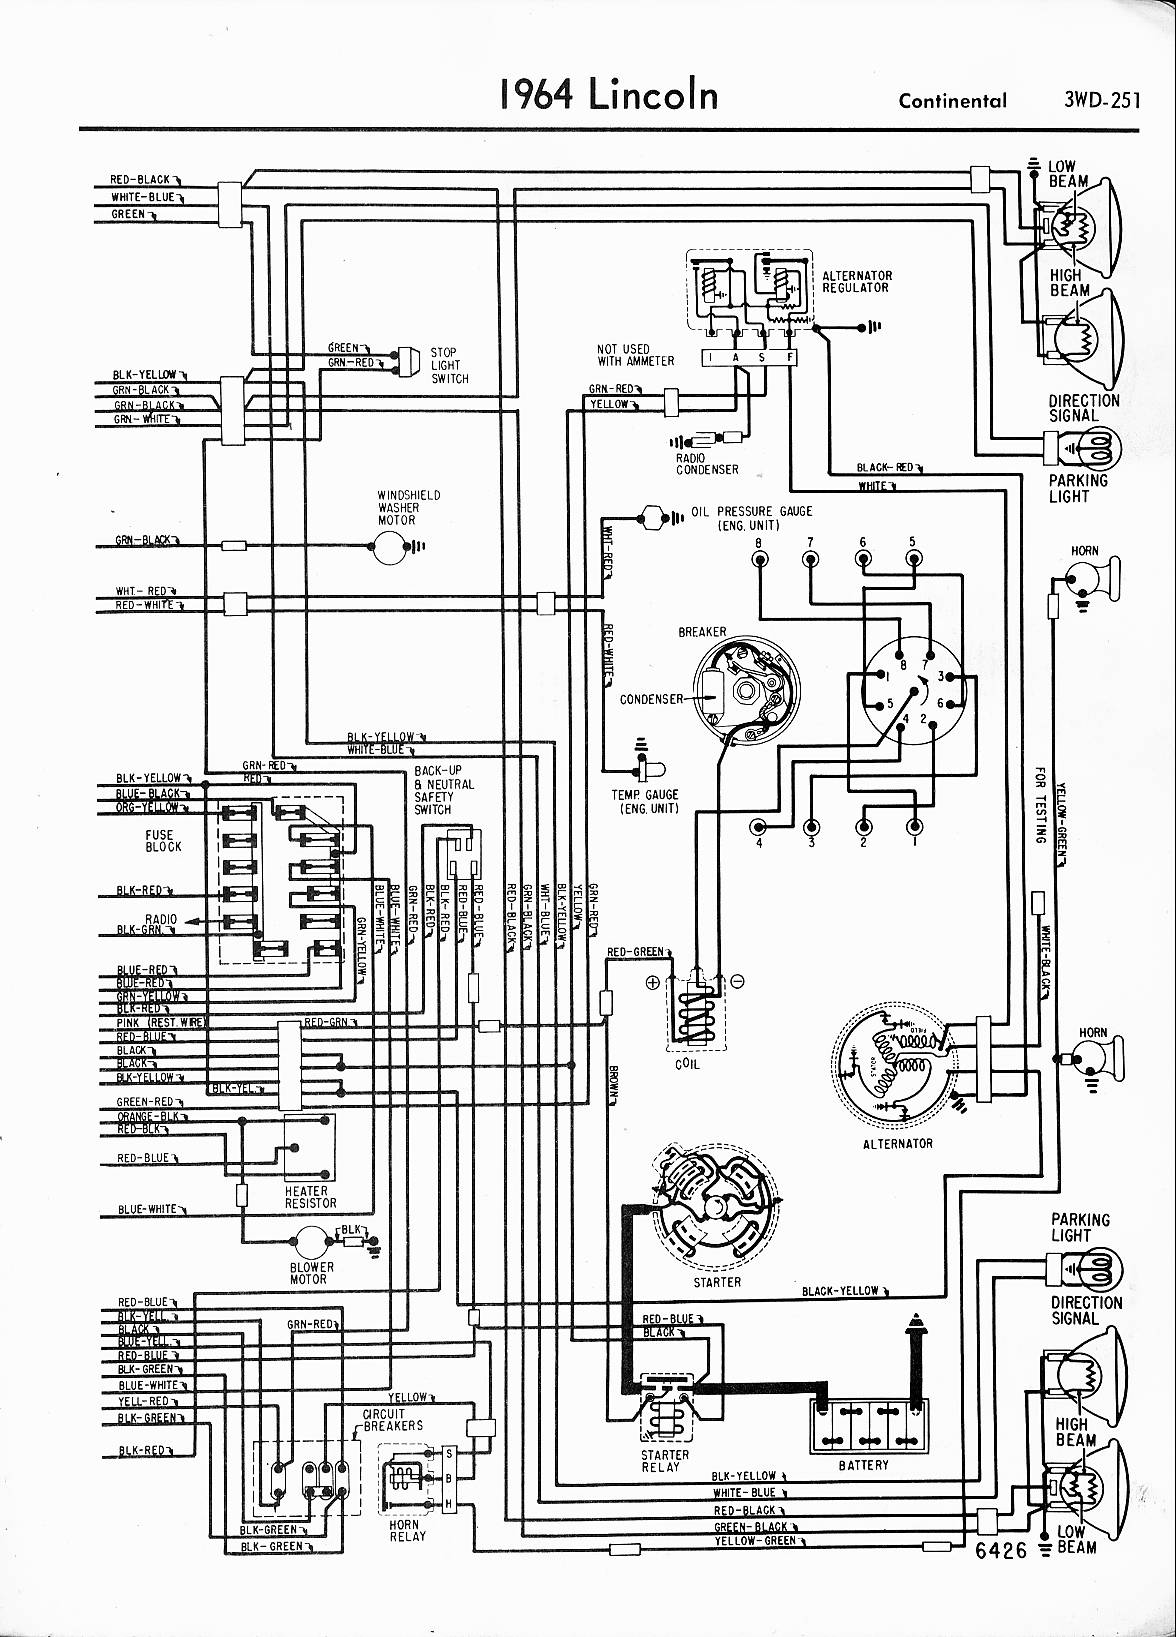 1954 Ford F100 Wiring Diagram in addition 634869 Quadrajet Choke Wire furthermore 1024592 Fuel Line Order likewise Star Wars Logo further 942267 Ballest Resistor. on 57 thunderbird wiring diagram